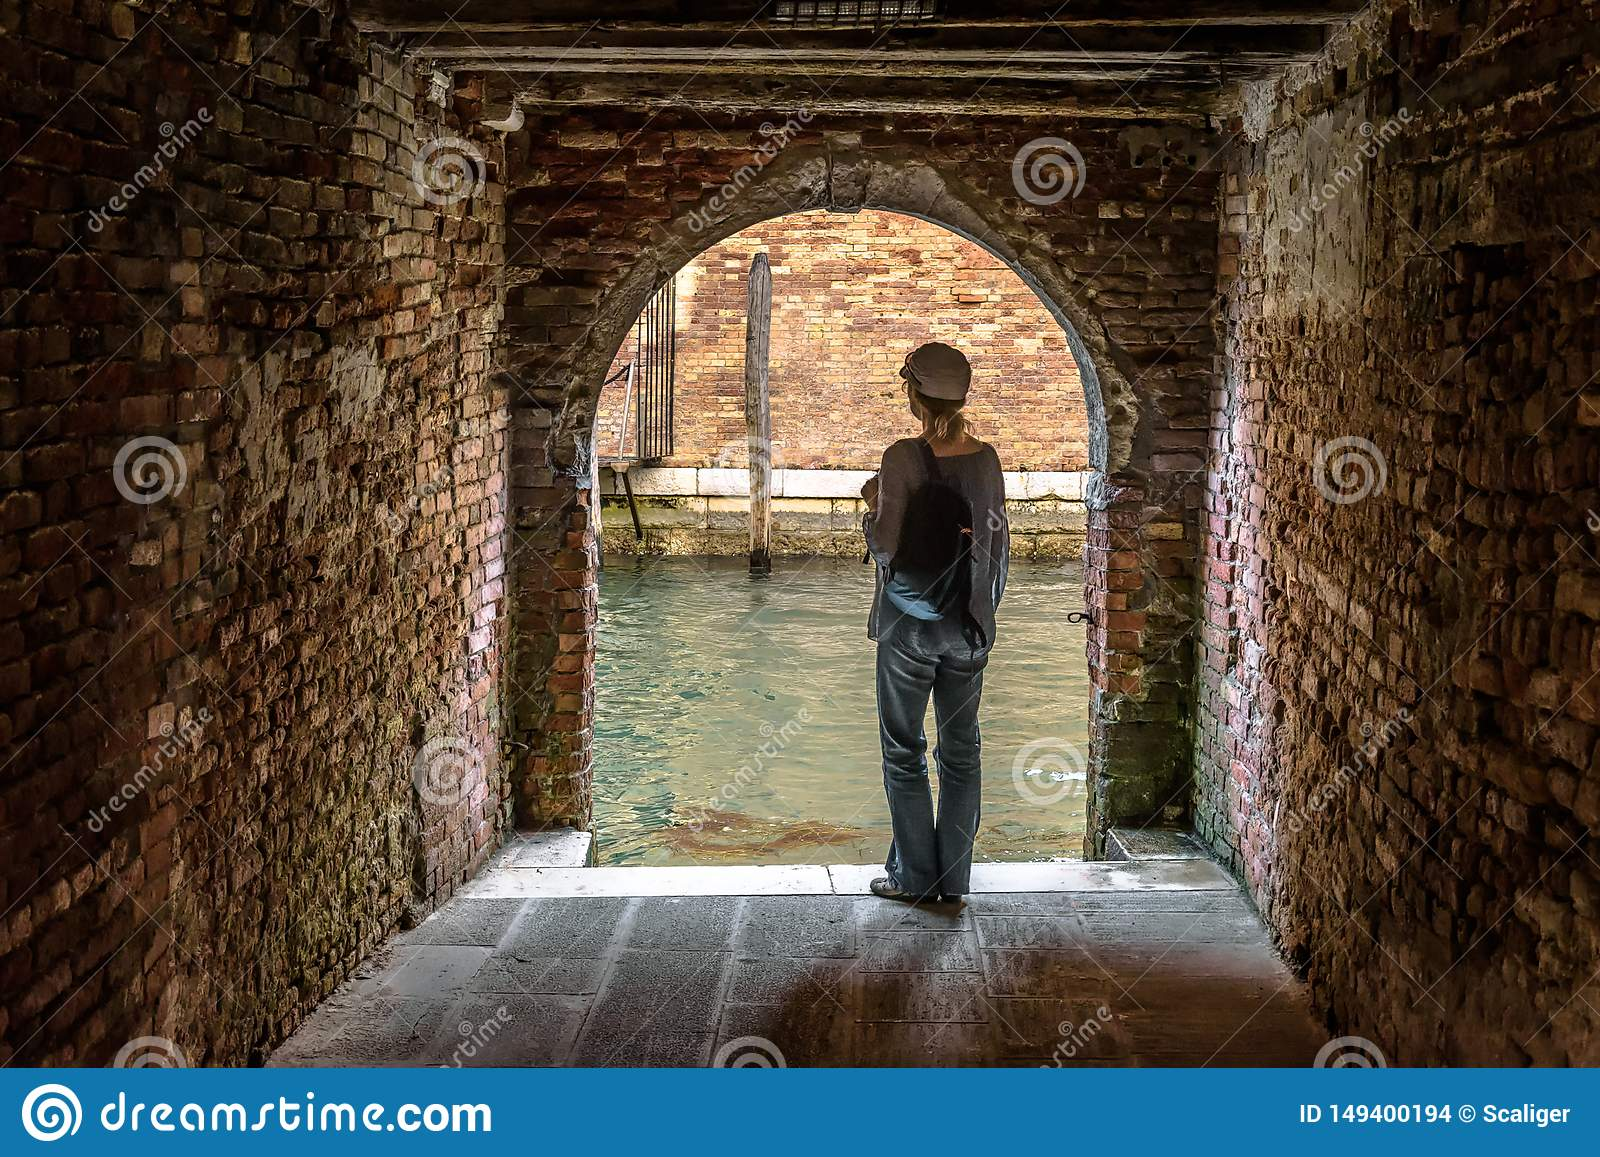 Woman Stands At Exit To Canal From Courtyard Venice Italy Stock